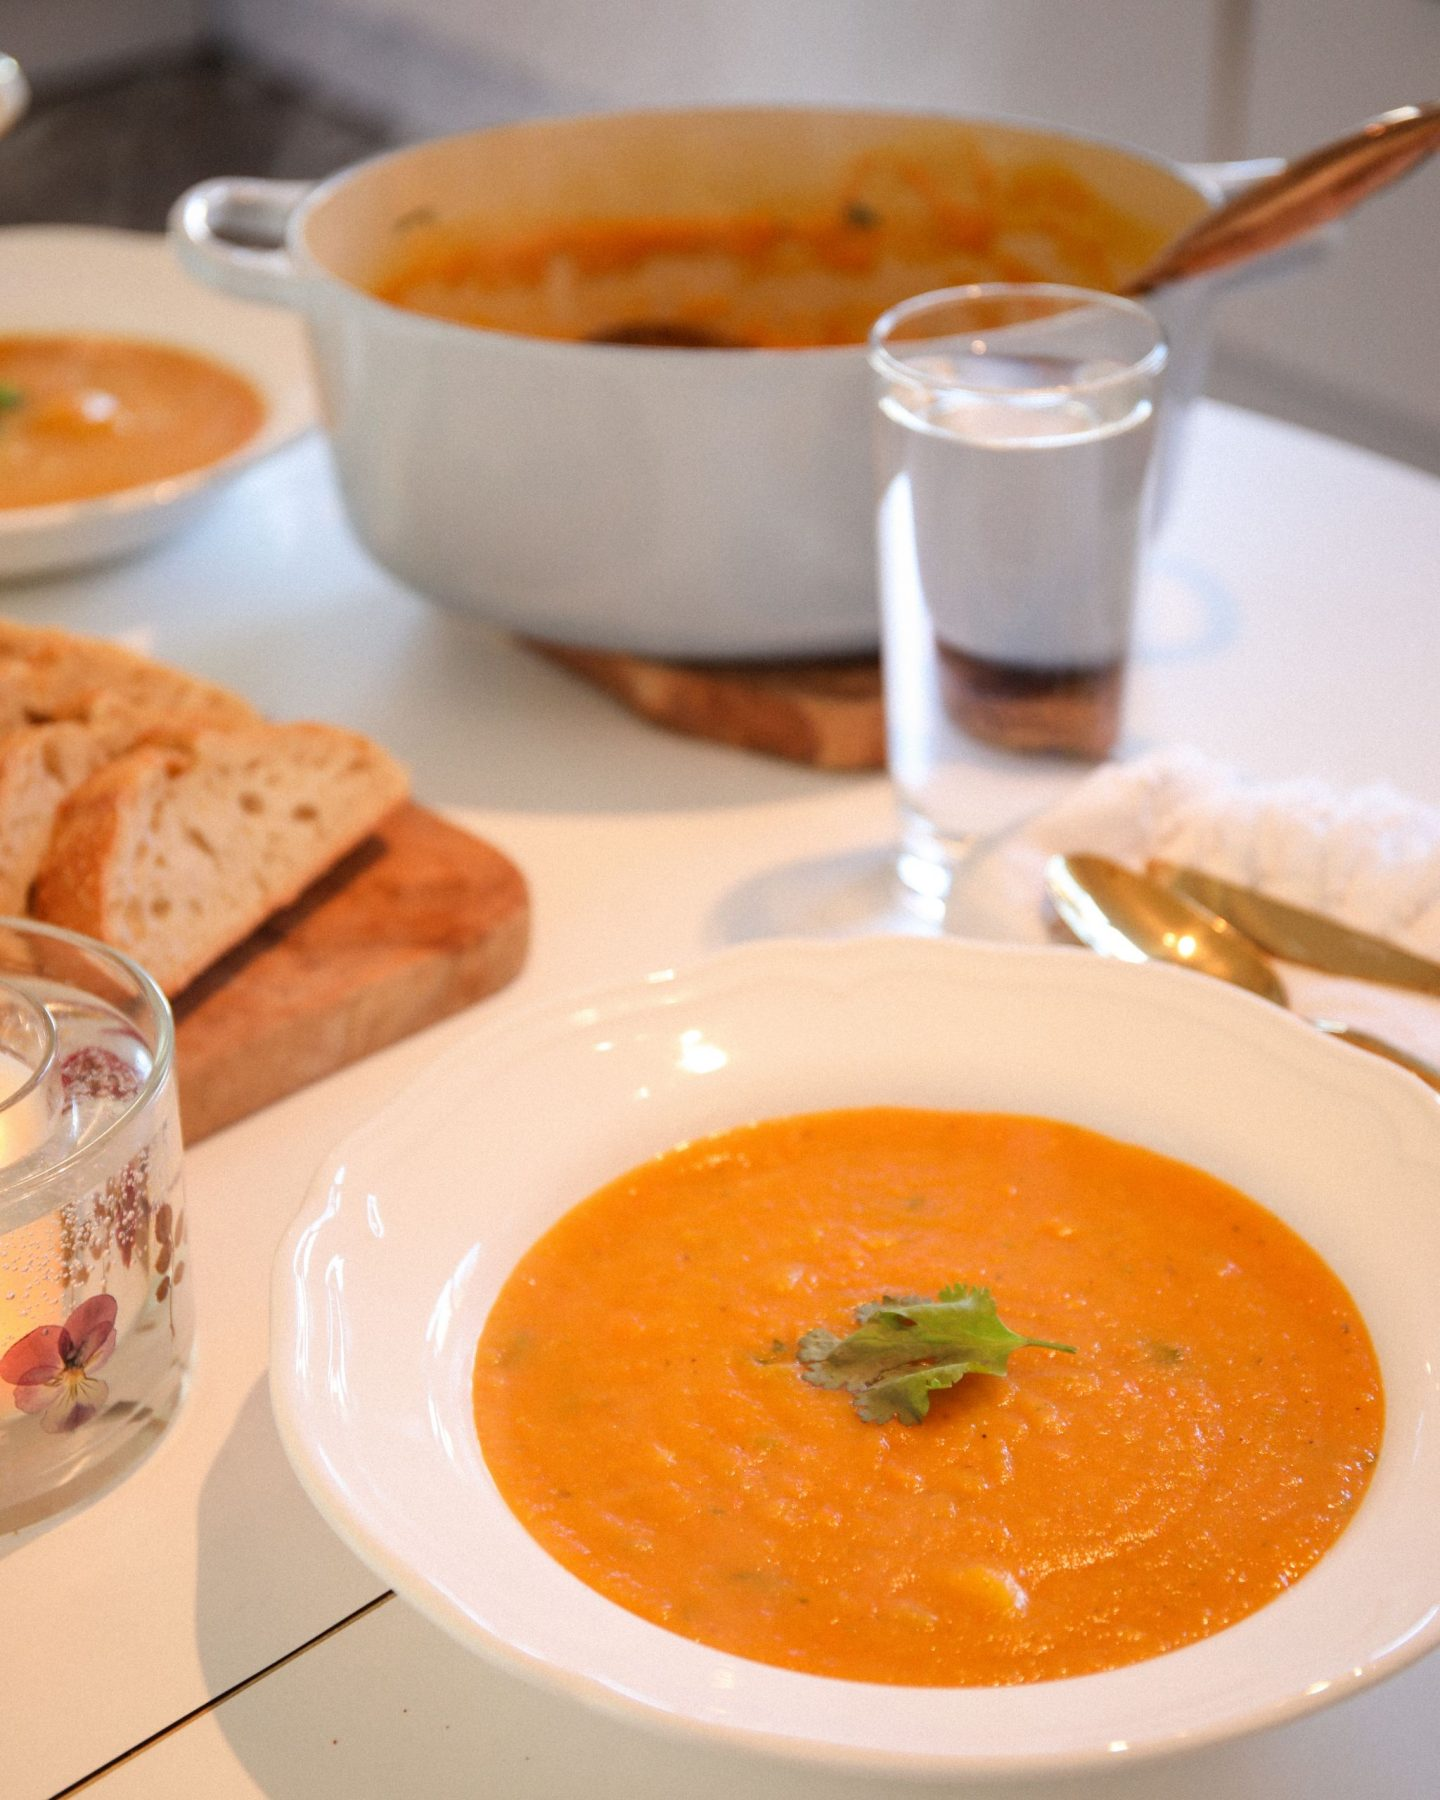 Katie Heath, Vegan Carrot and Coriander Soup, Kalanchoe